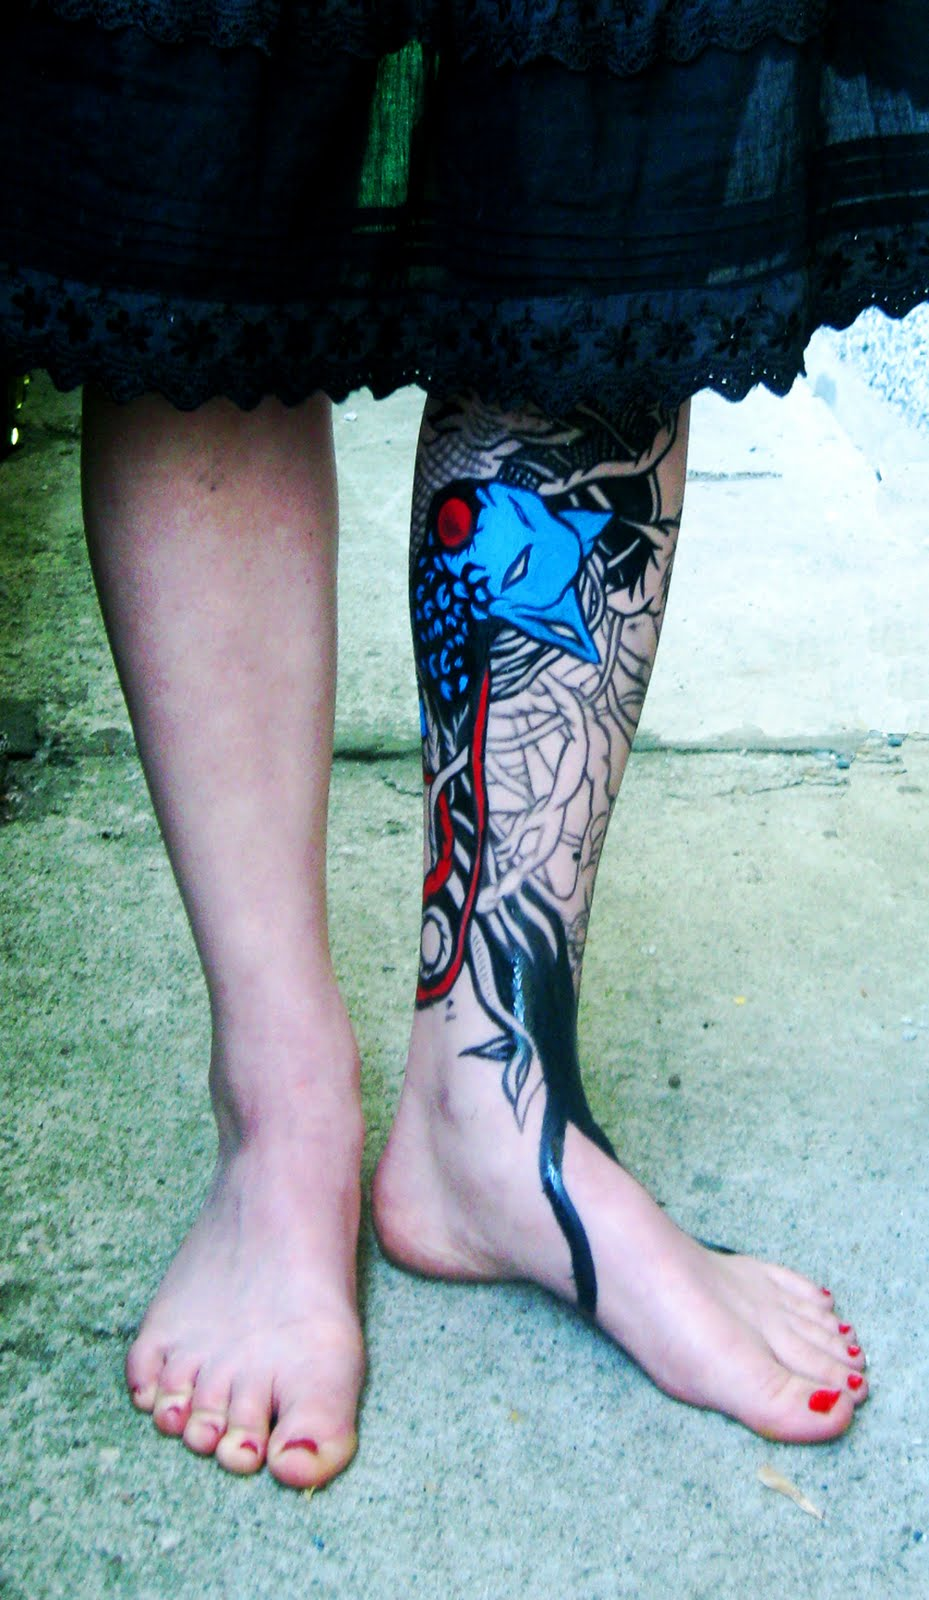 EATEN BY DUCKS: [about my bodyart and press]